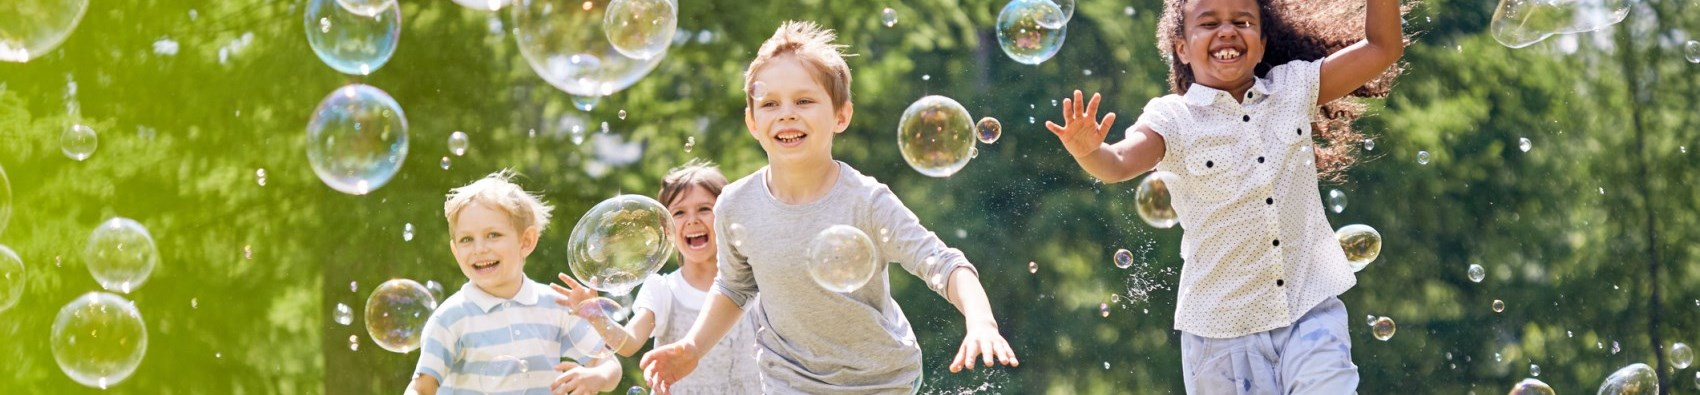 children running through bubbles